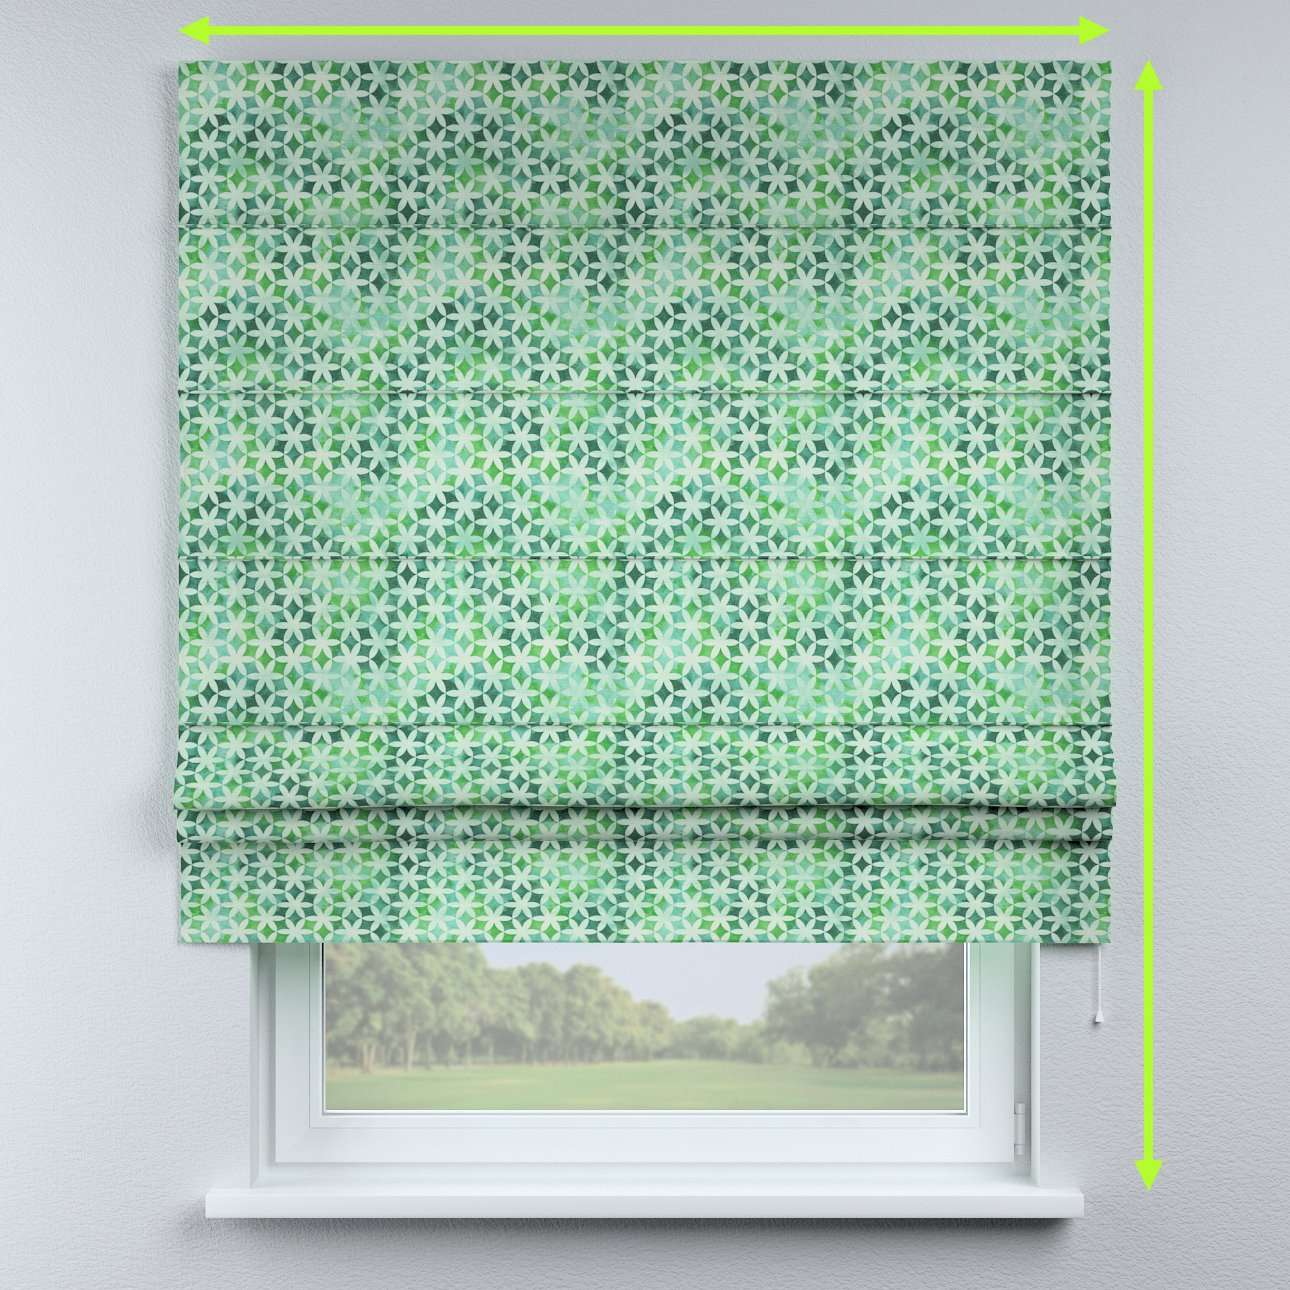 Padva roman blind  in collection Urban Jungle, fabric: 141-65